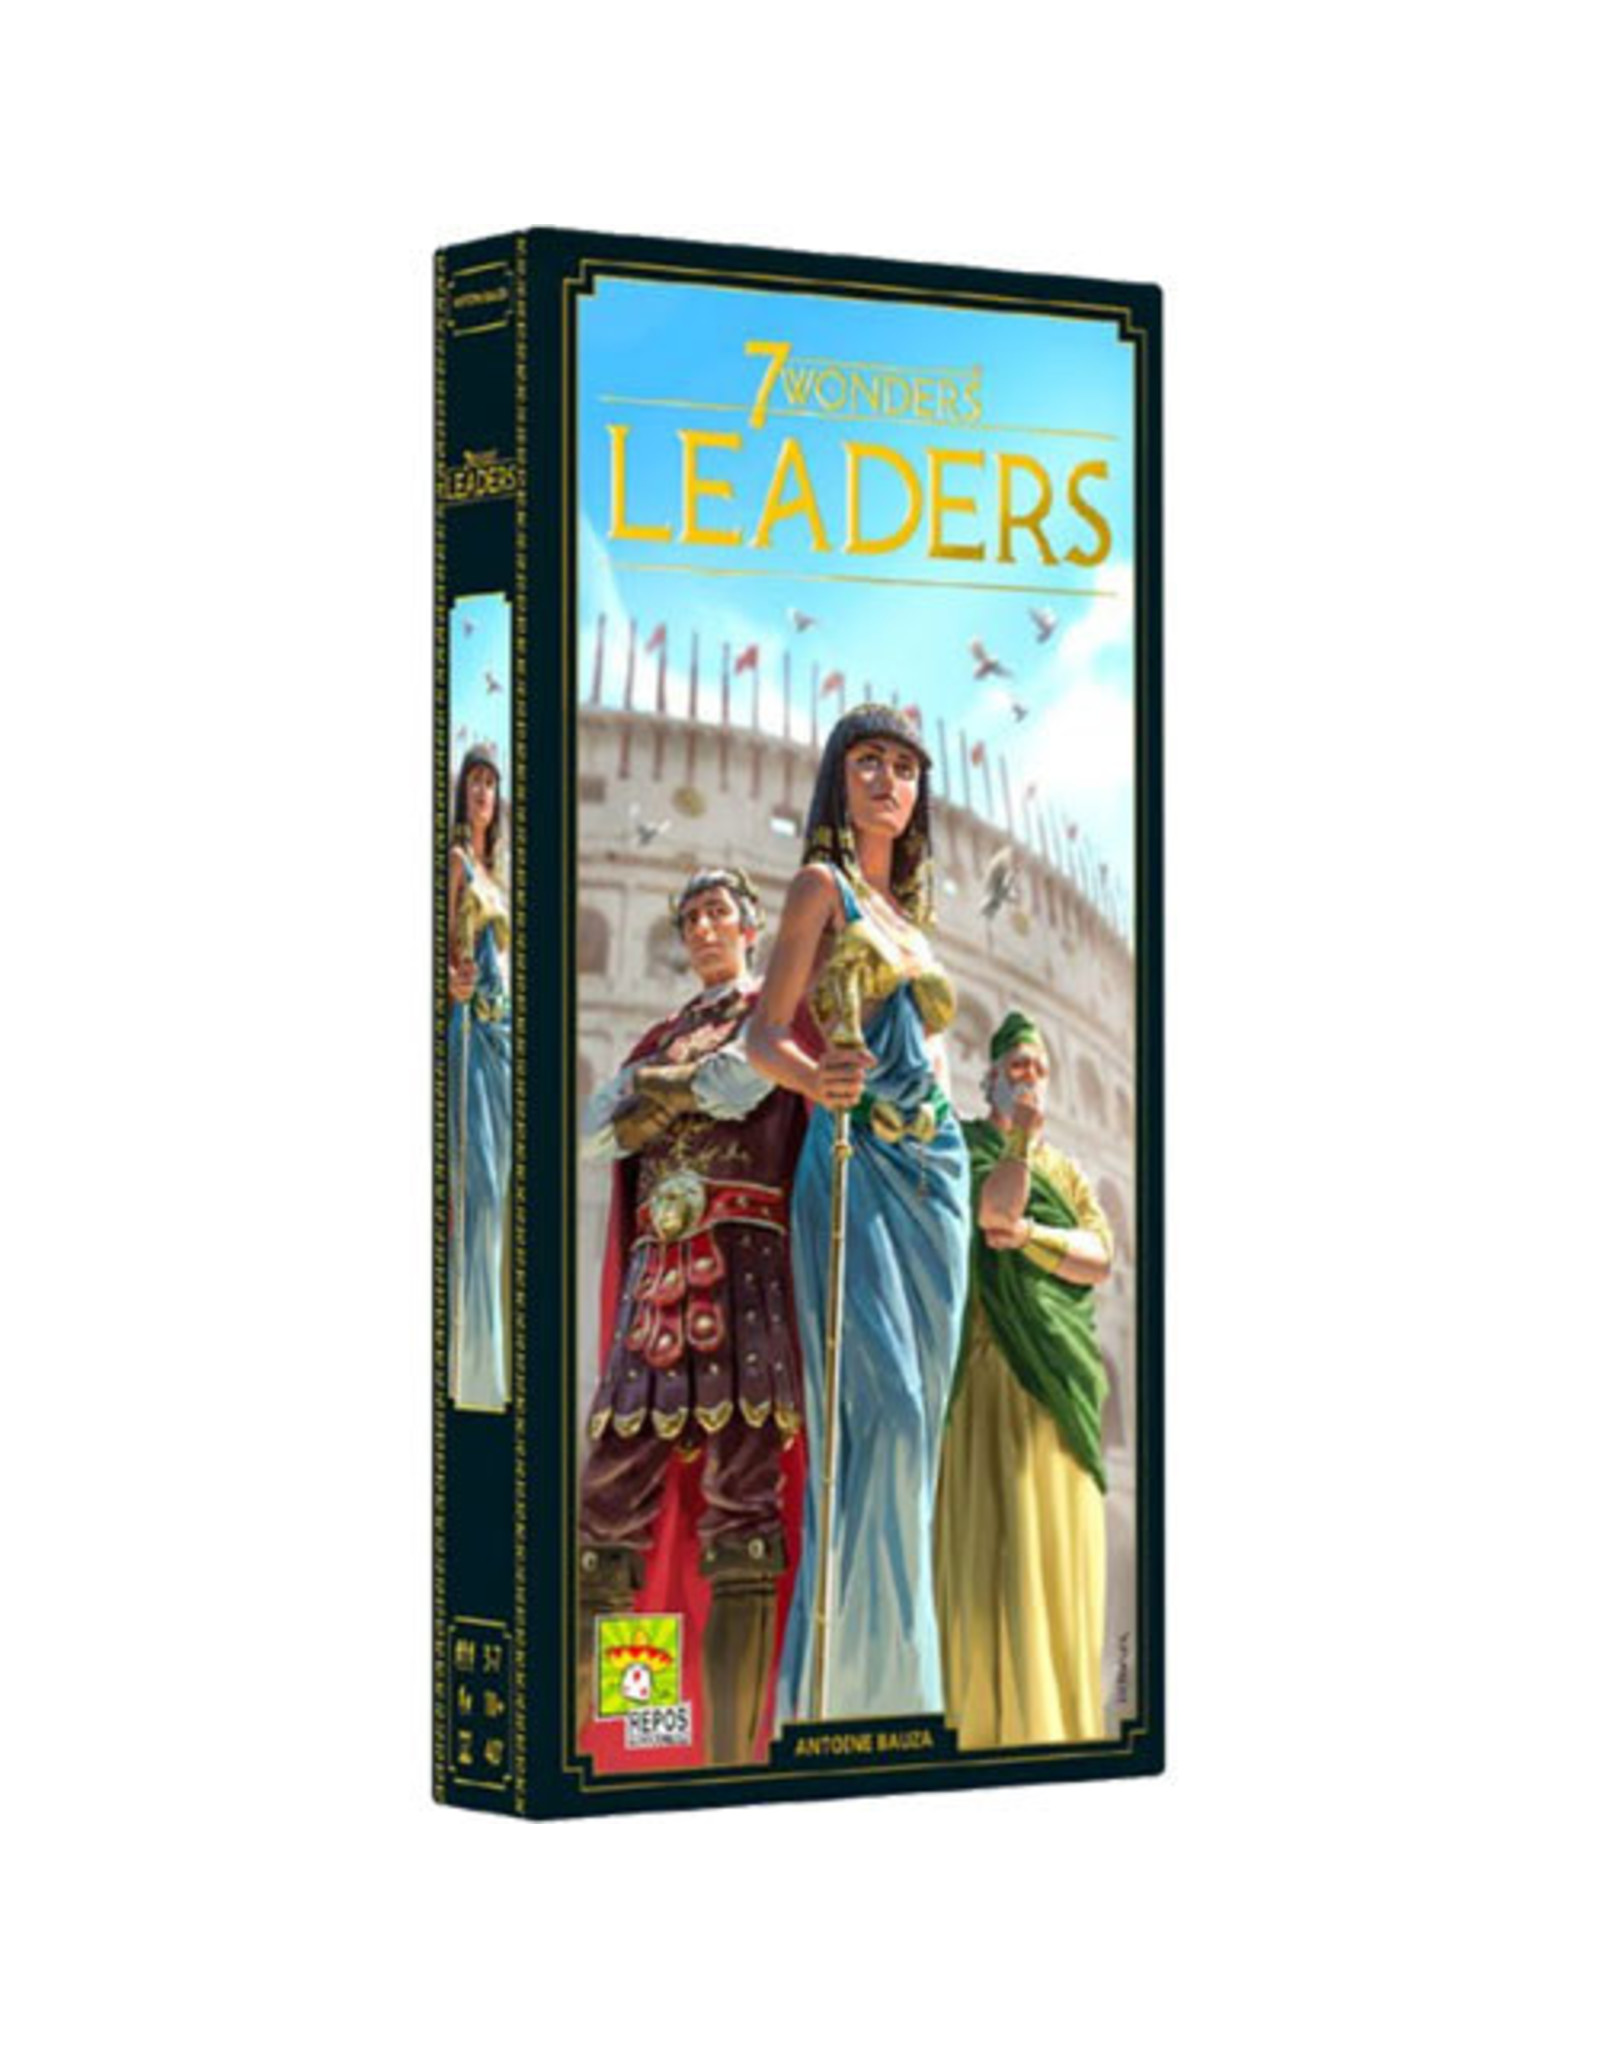 Asmodee 7 Wonders New Edition: Leaders Expansion